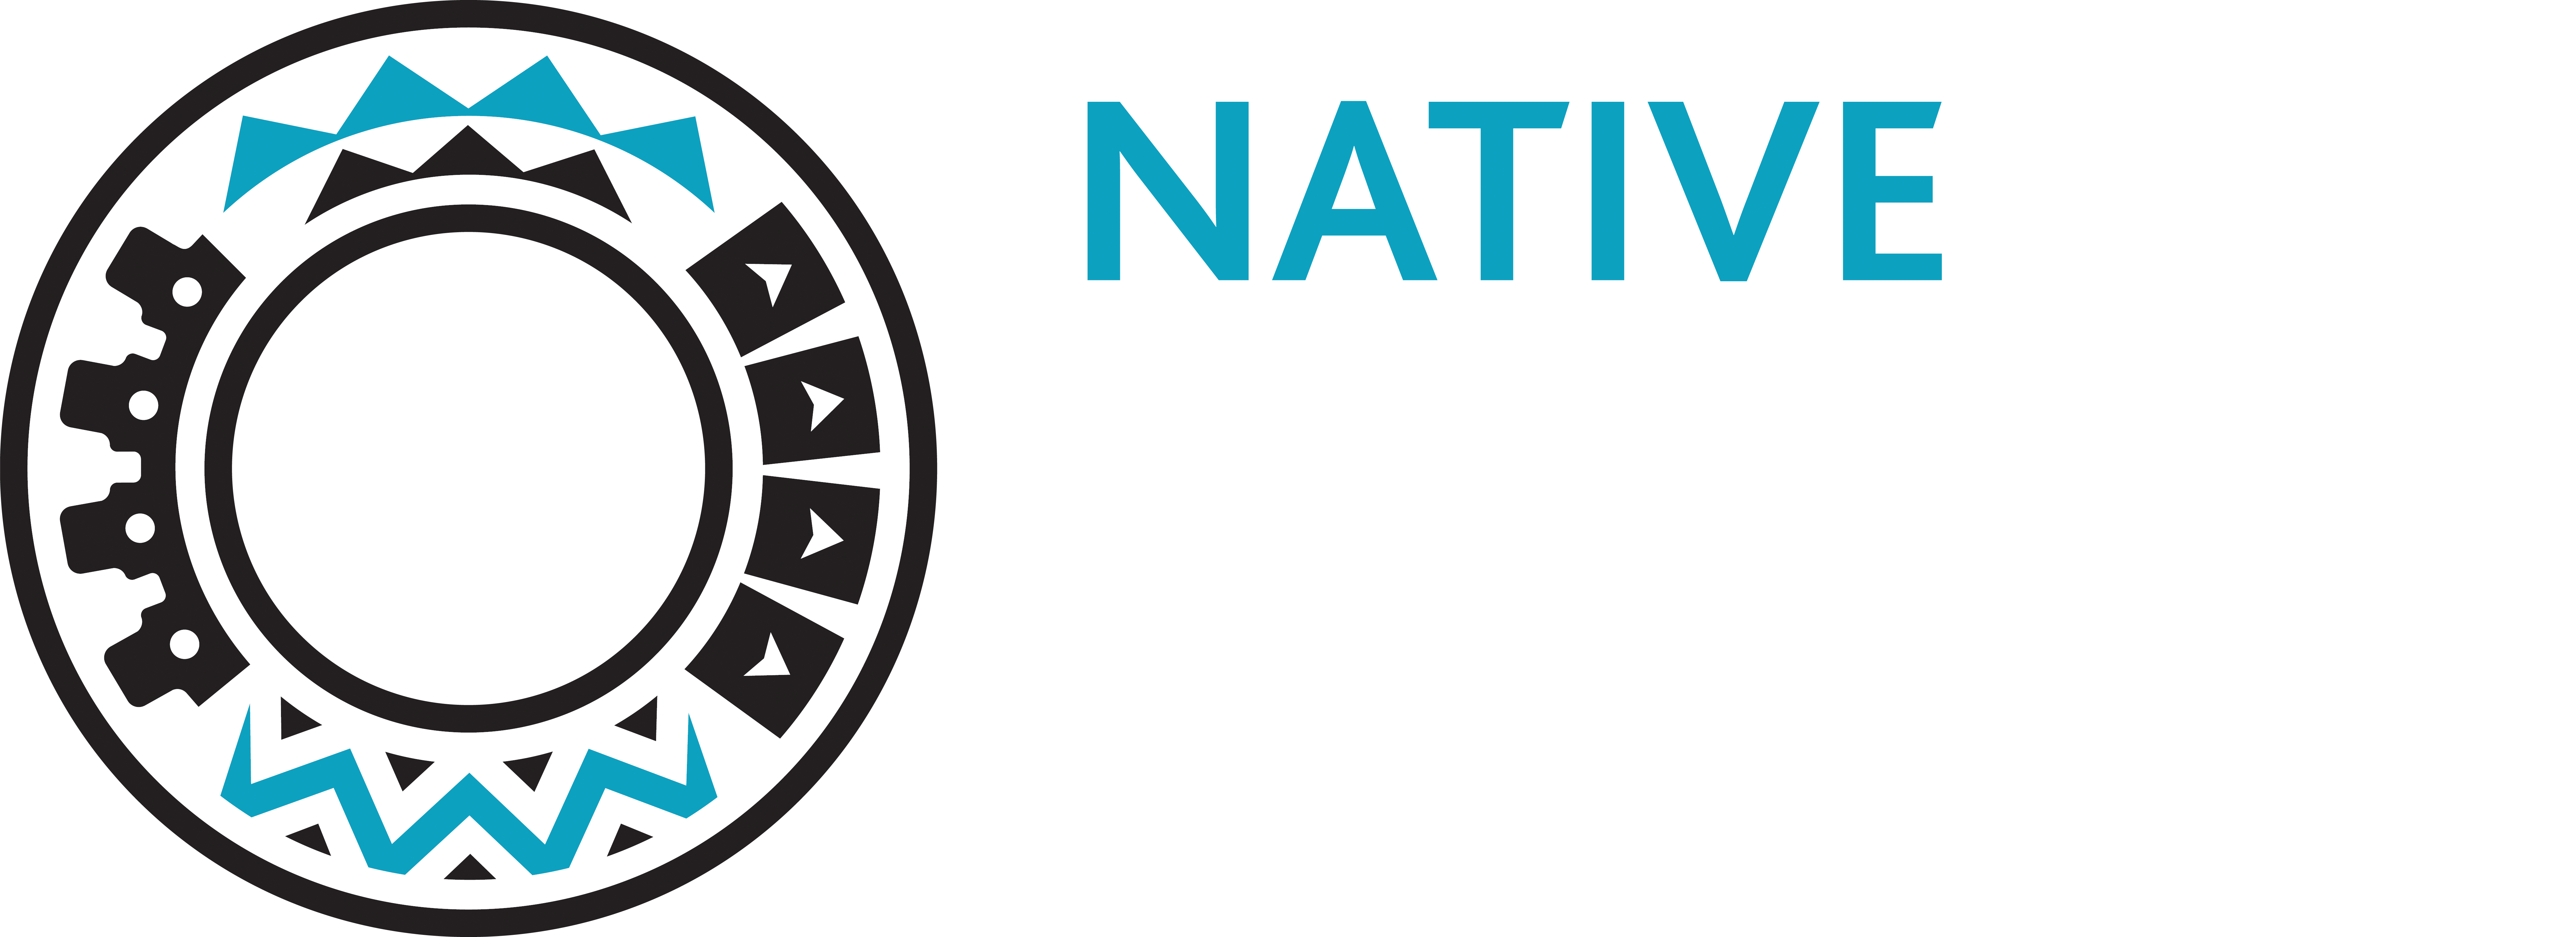 Native Community Capital